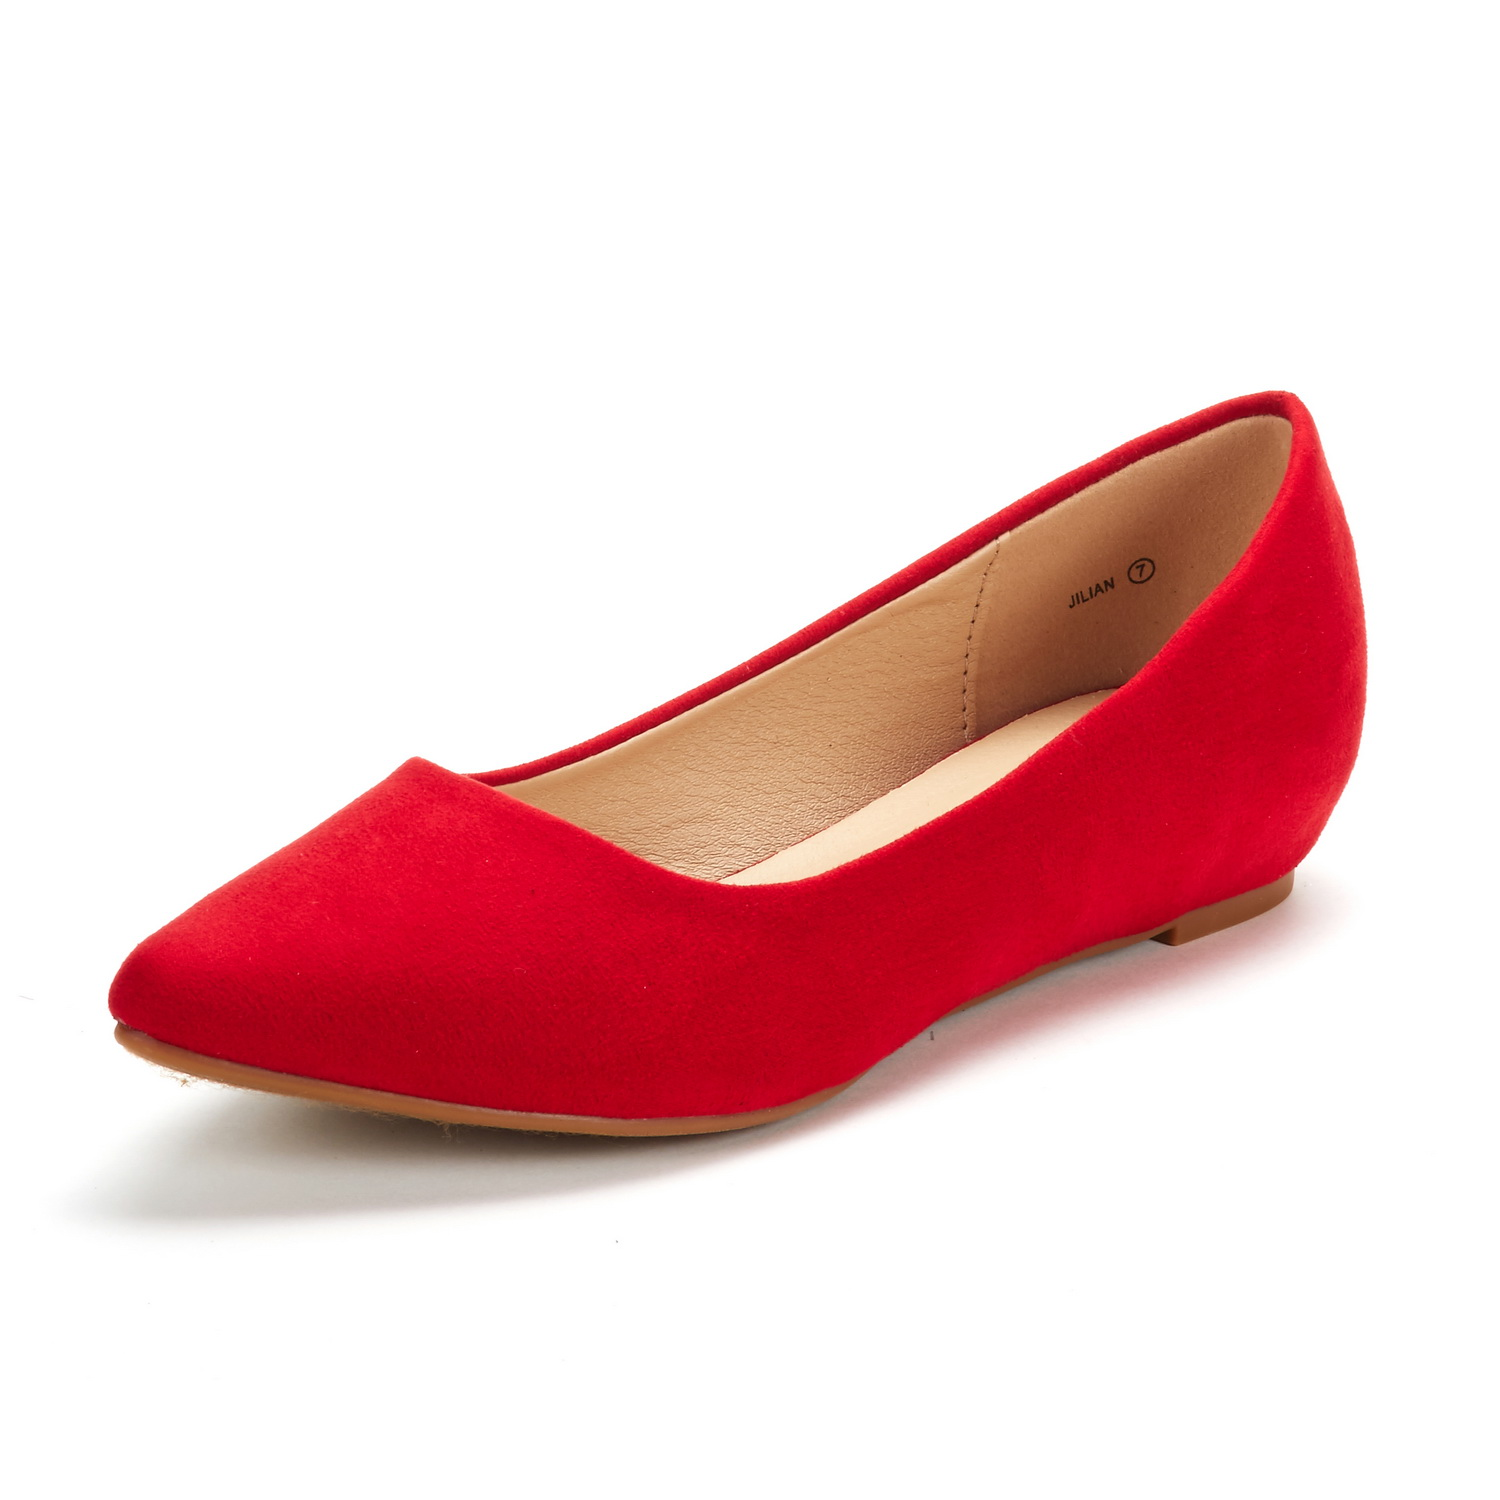 DREAM-PAIRS-Women-Low-Wedge-Flats-Ladies-Pointed-Toe-Slip-On-Comfort-Flat-Shoes thumbnail 6